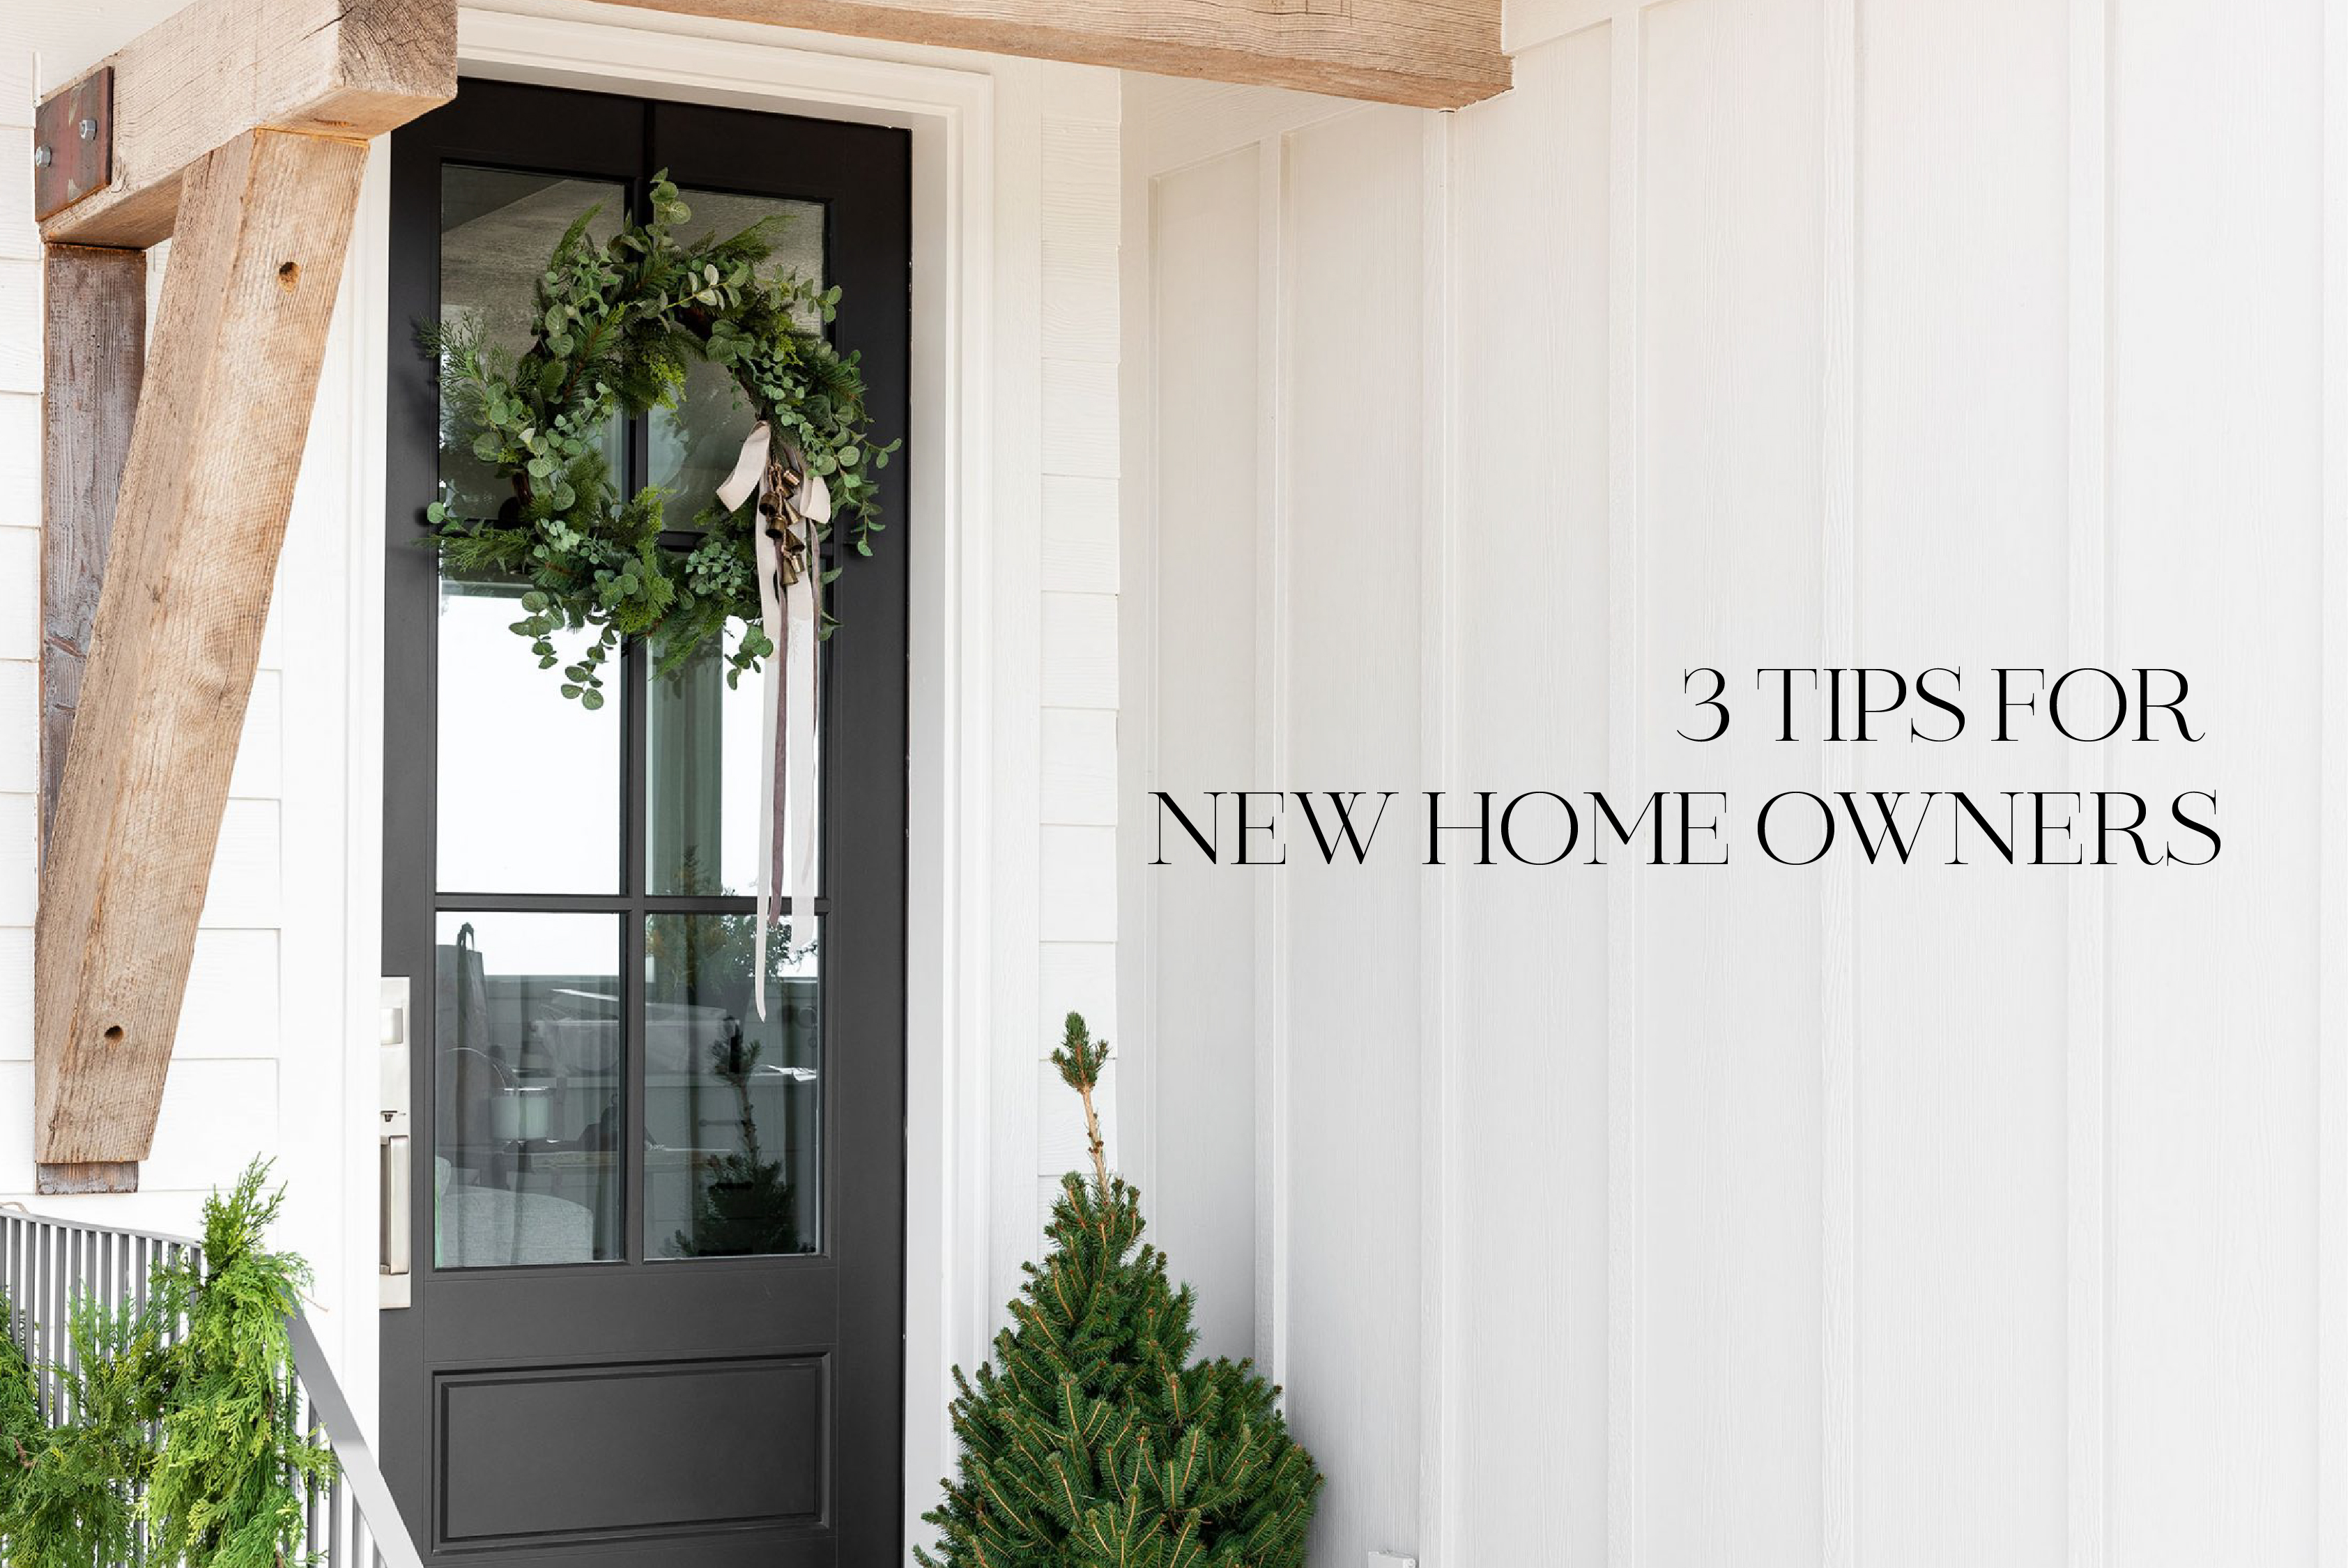 3 Tips for New Home Owners